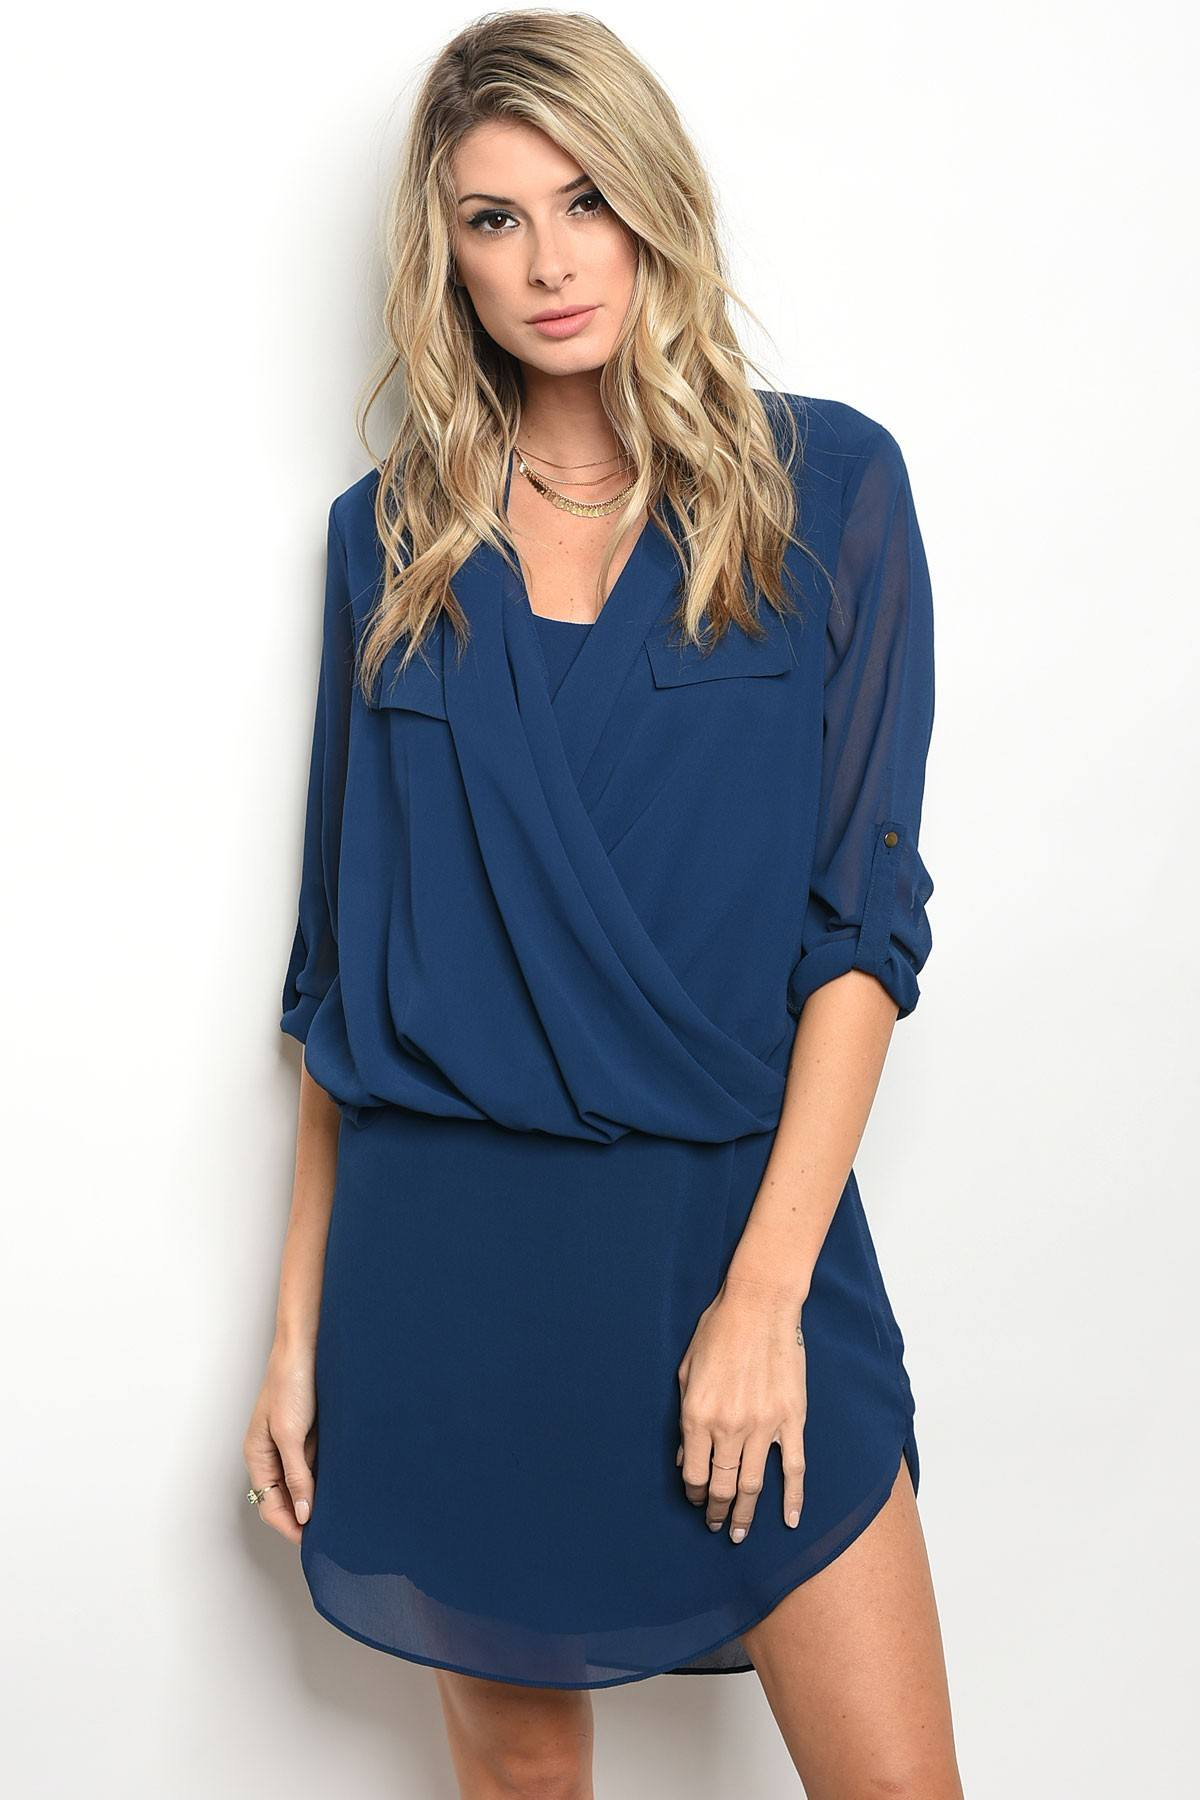 Ladies fashion 3/4 sleeve acrylic blend shift dress with a draped detailed top and a v neckline-S-MY UPSCALE STORE